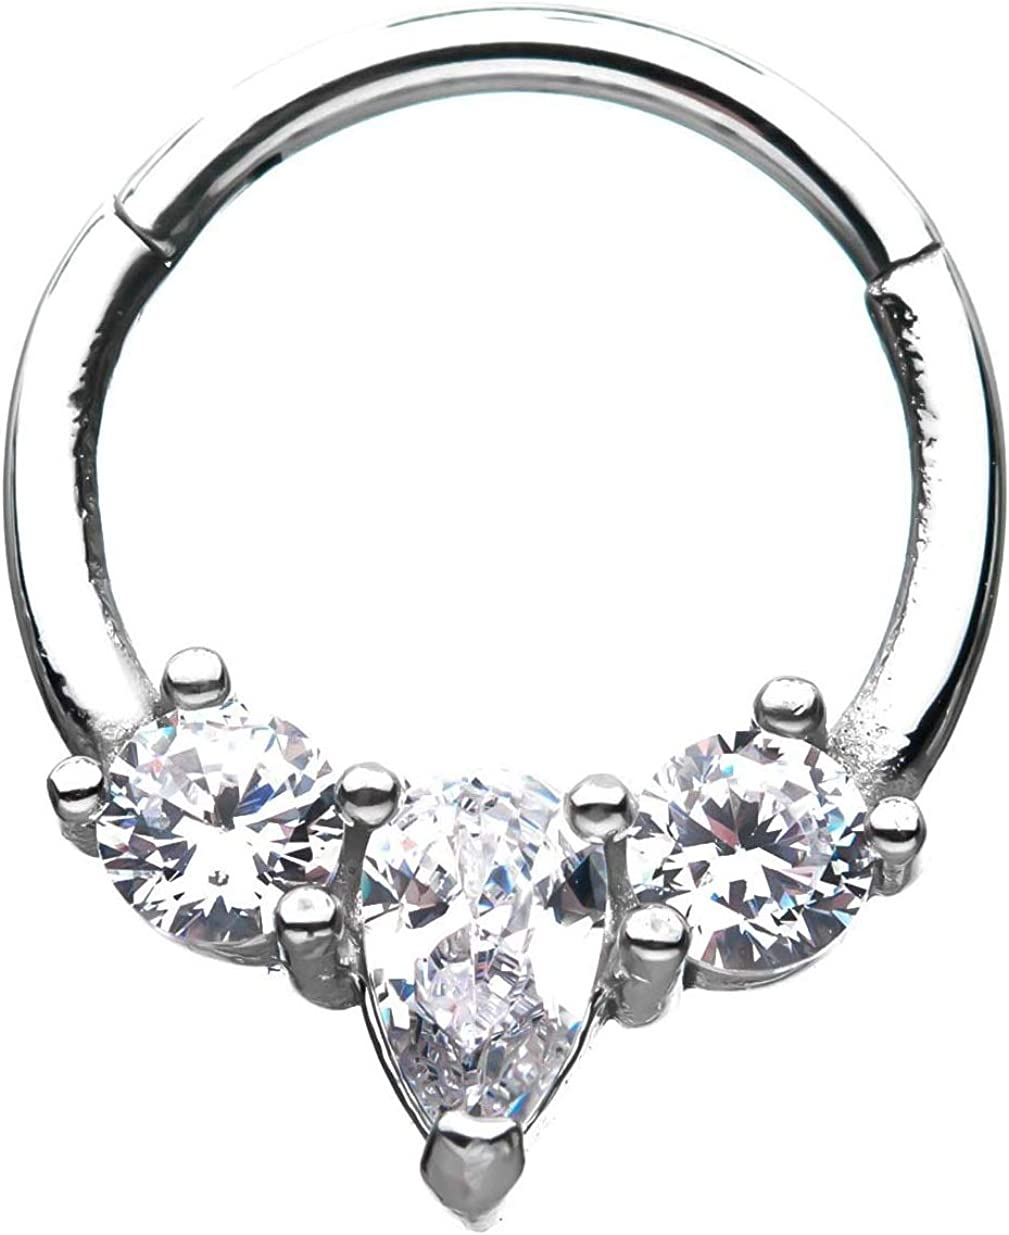 Denver Mall 16G Three Clear CZ Crystal Stainless Center Hinged Steel Choice Segment